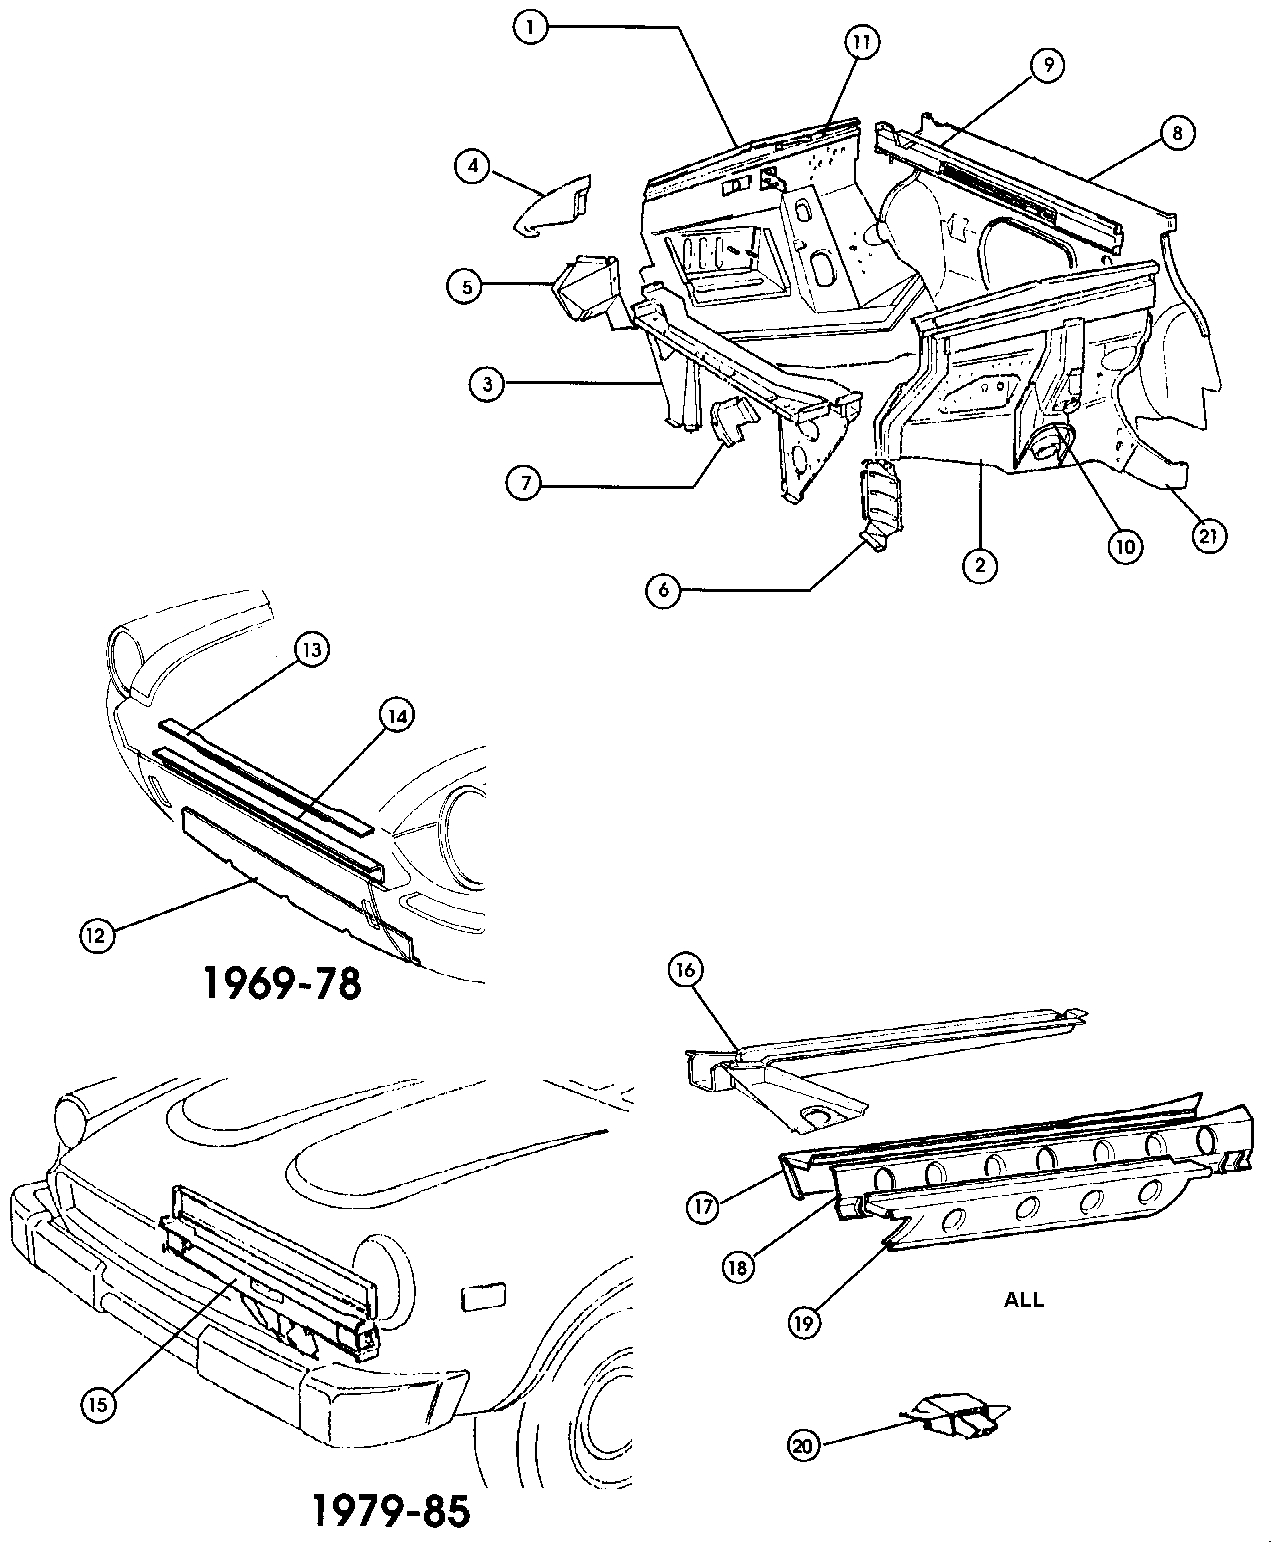 Fiat 124 Body Engine Bay Repair Panels 500 And Classic External Computer Parts Diagram Covers 78